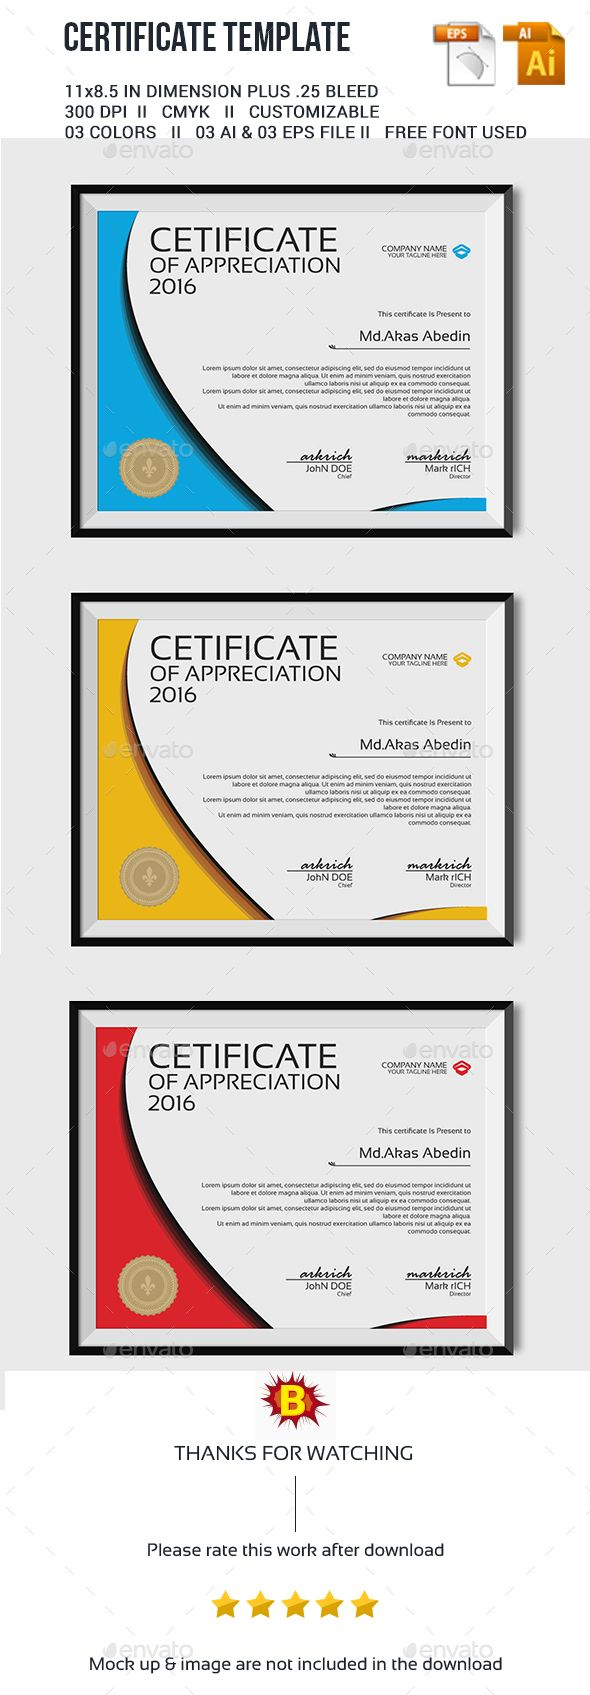 186 best certificate images on pinterest certificate templates certificate template more xflitez Gallery